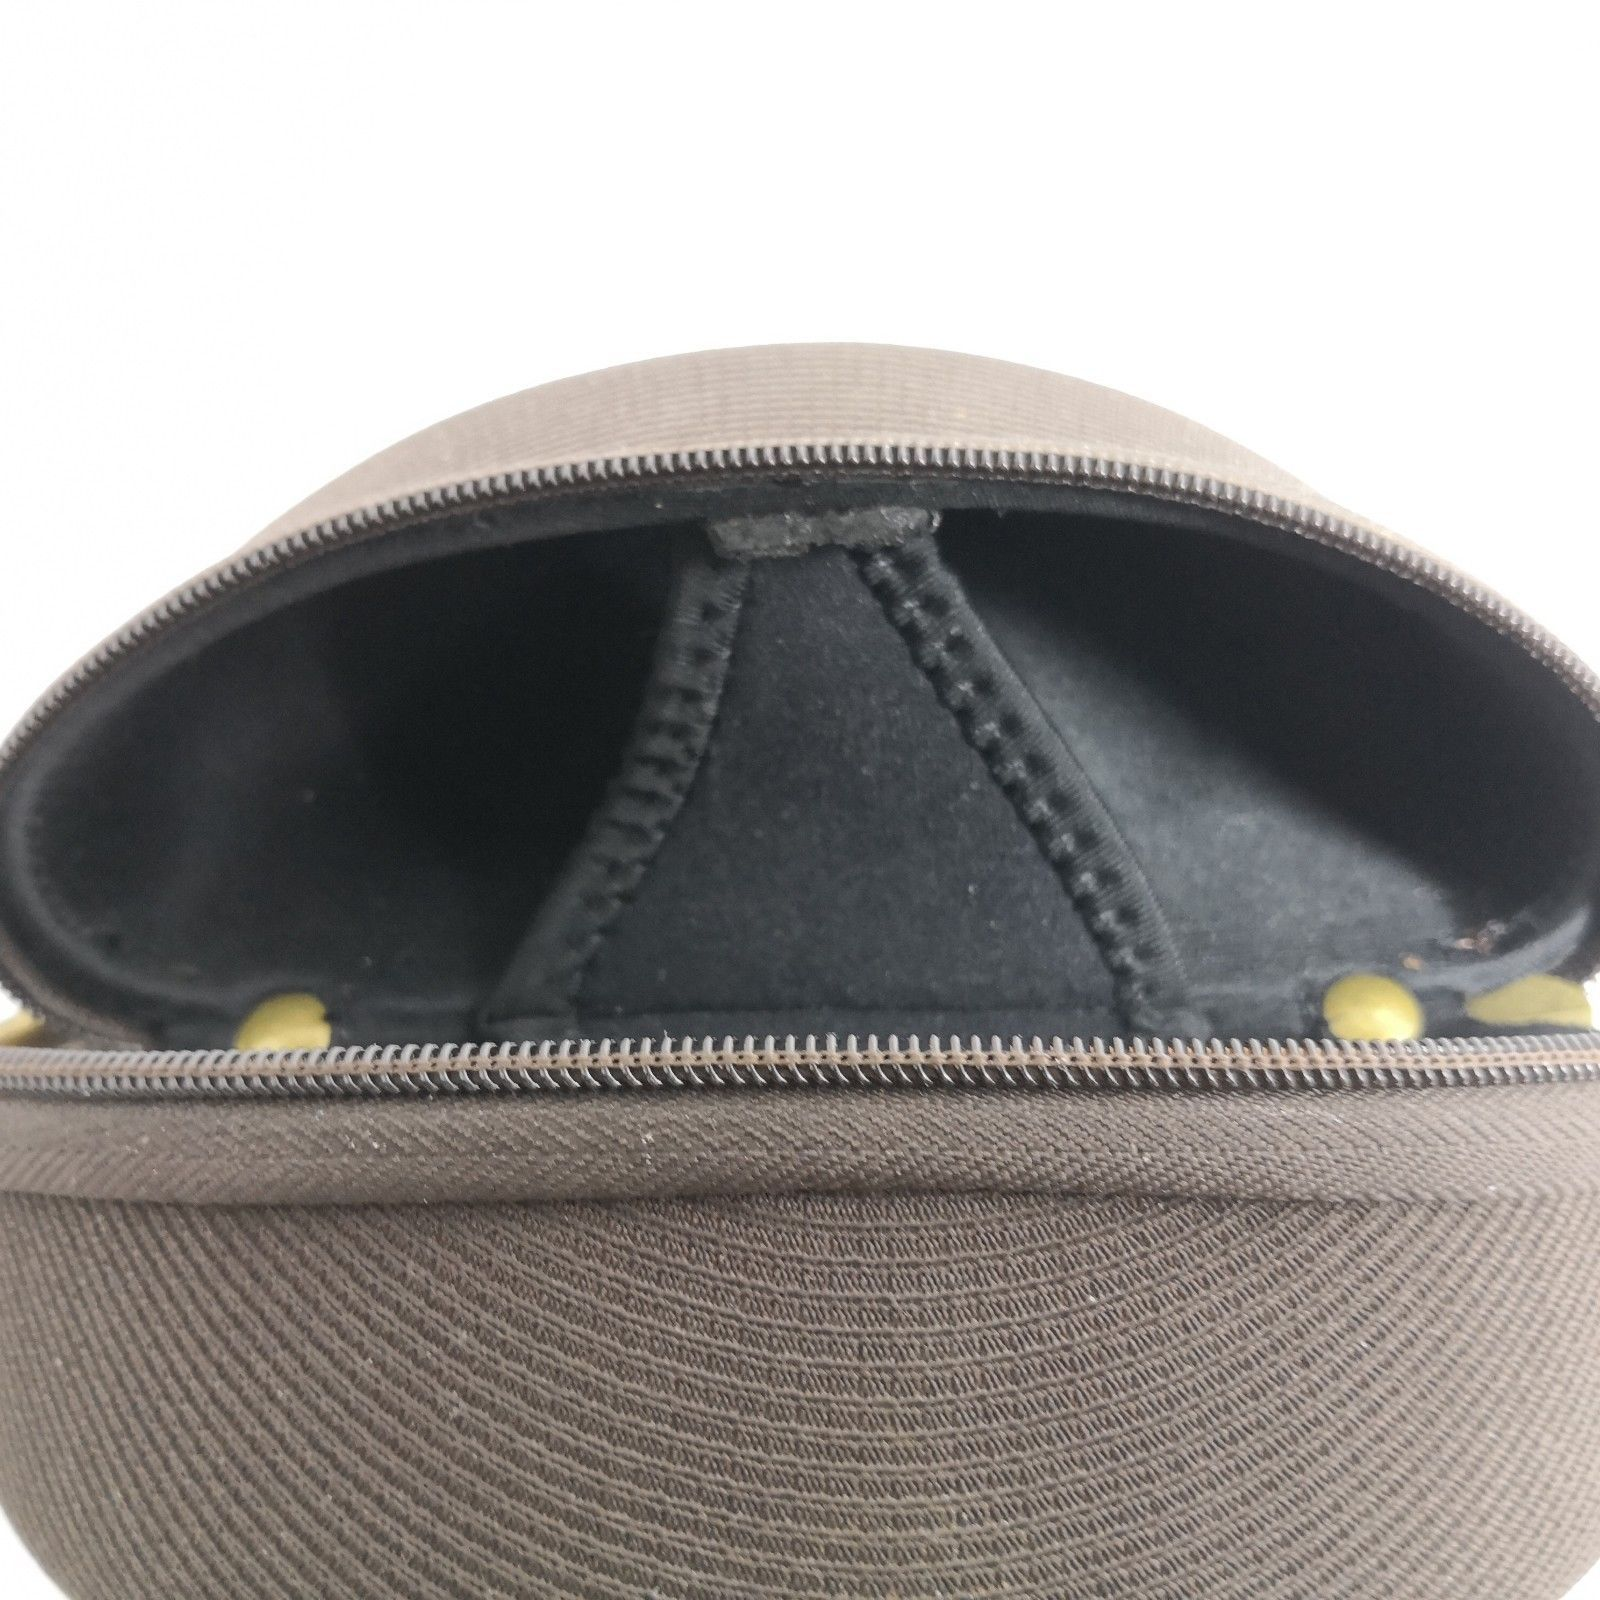 f3614227019d Duluth Trading Dual Eyeglasses Case Only Hard Nylon Borwn Hiking Travel